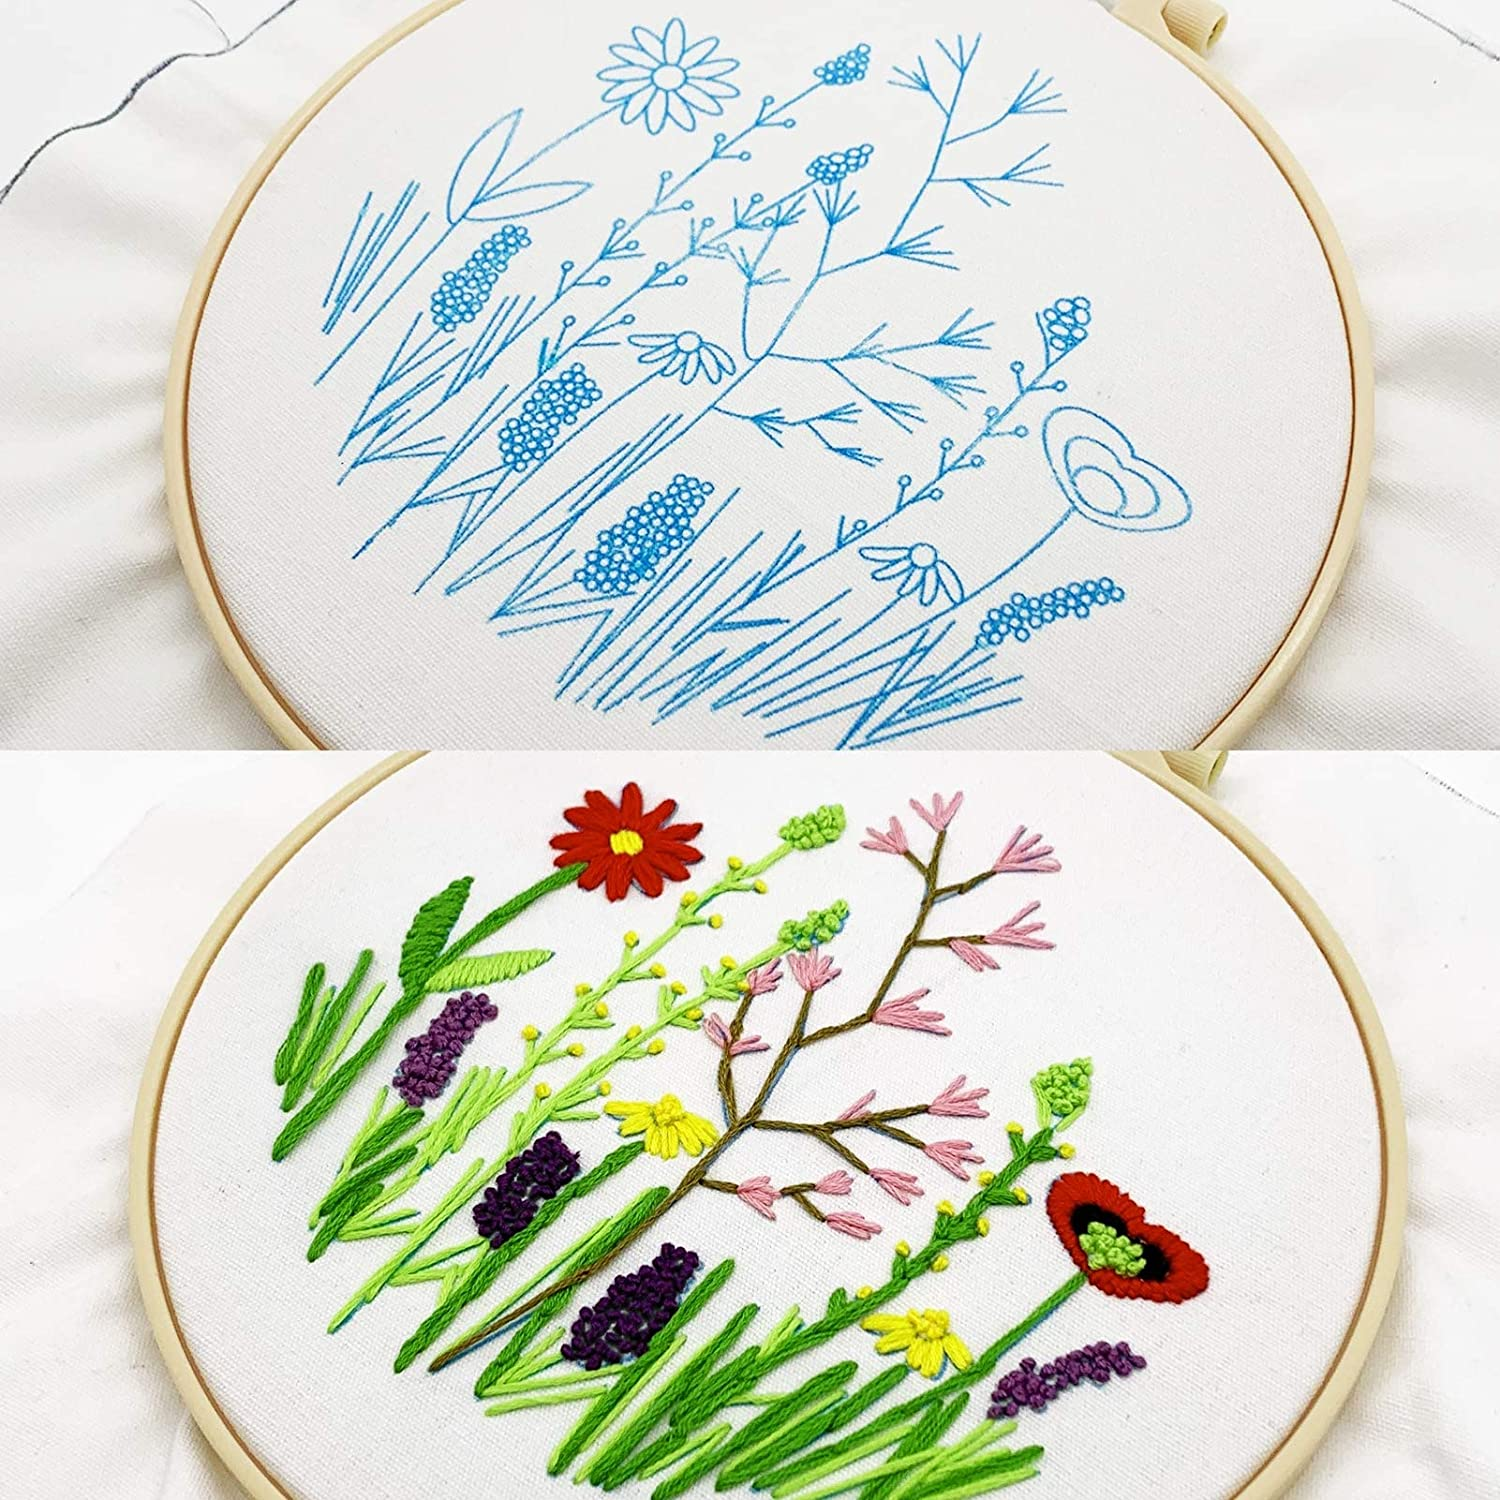 Embroidery 2021 Kit for Beginners Cross Flowe Kits with Stitch Plants Dallas Mall